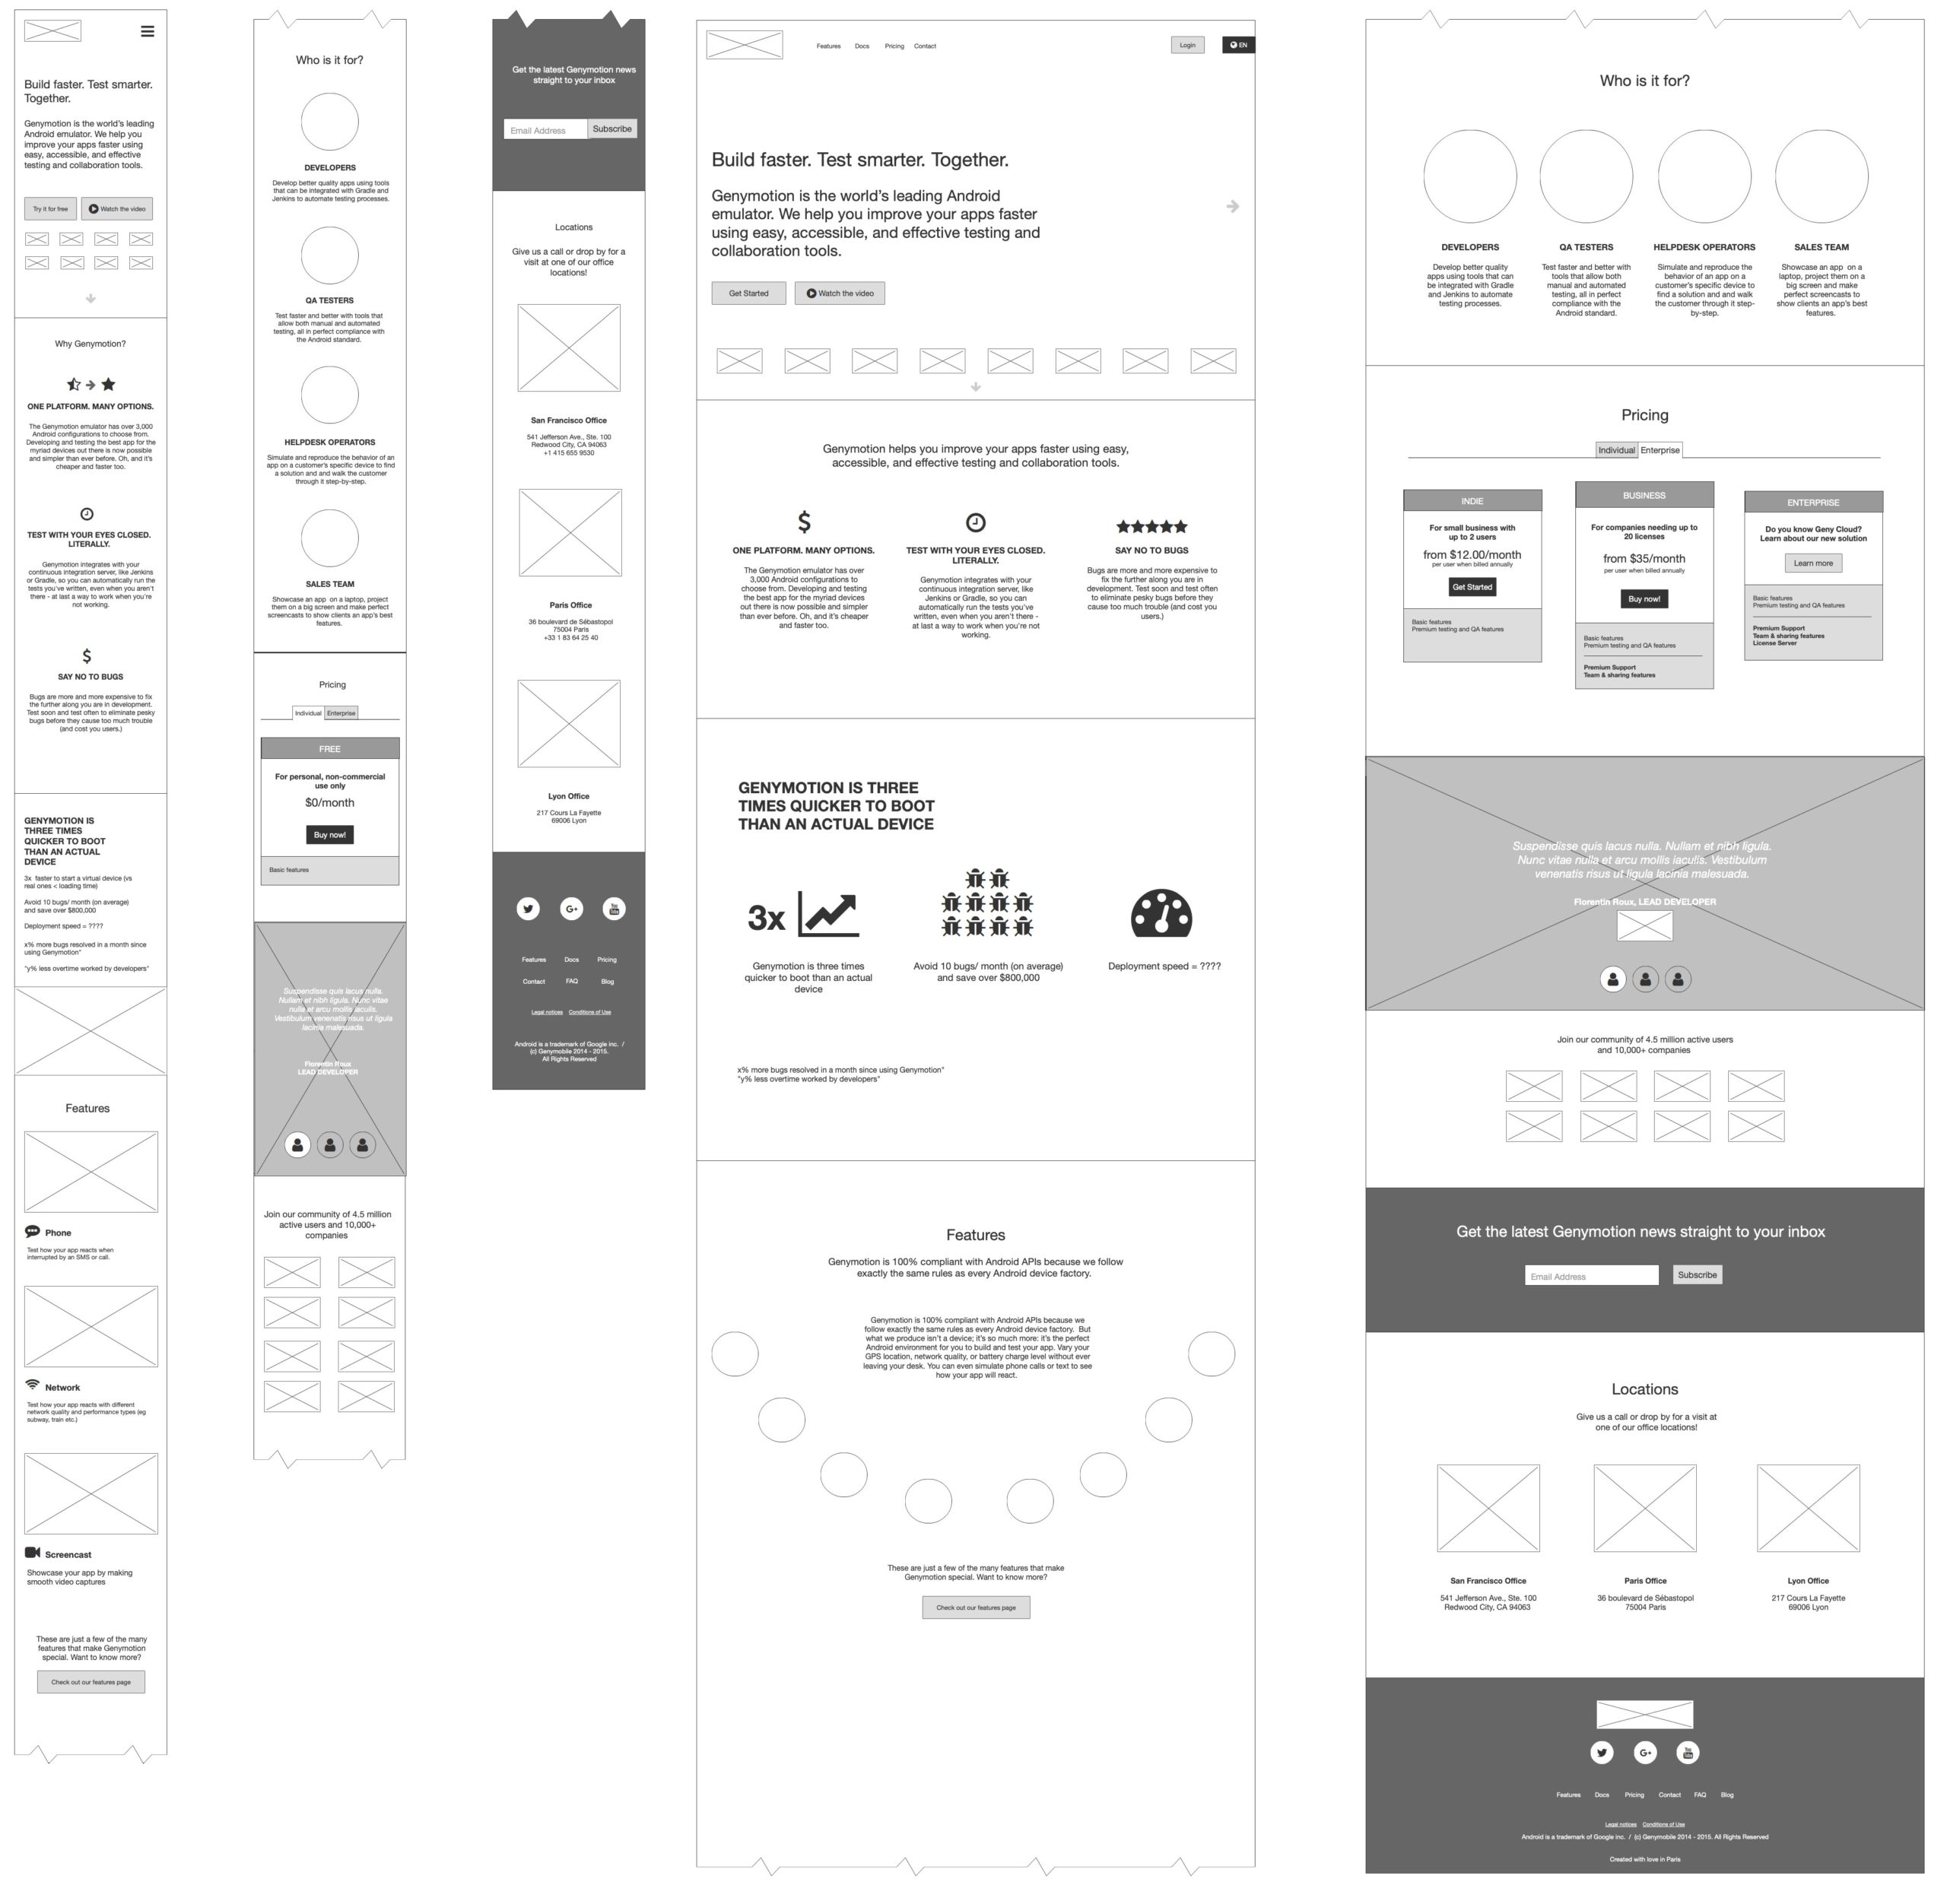 Genymotion homepage wireframes